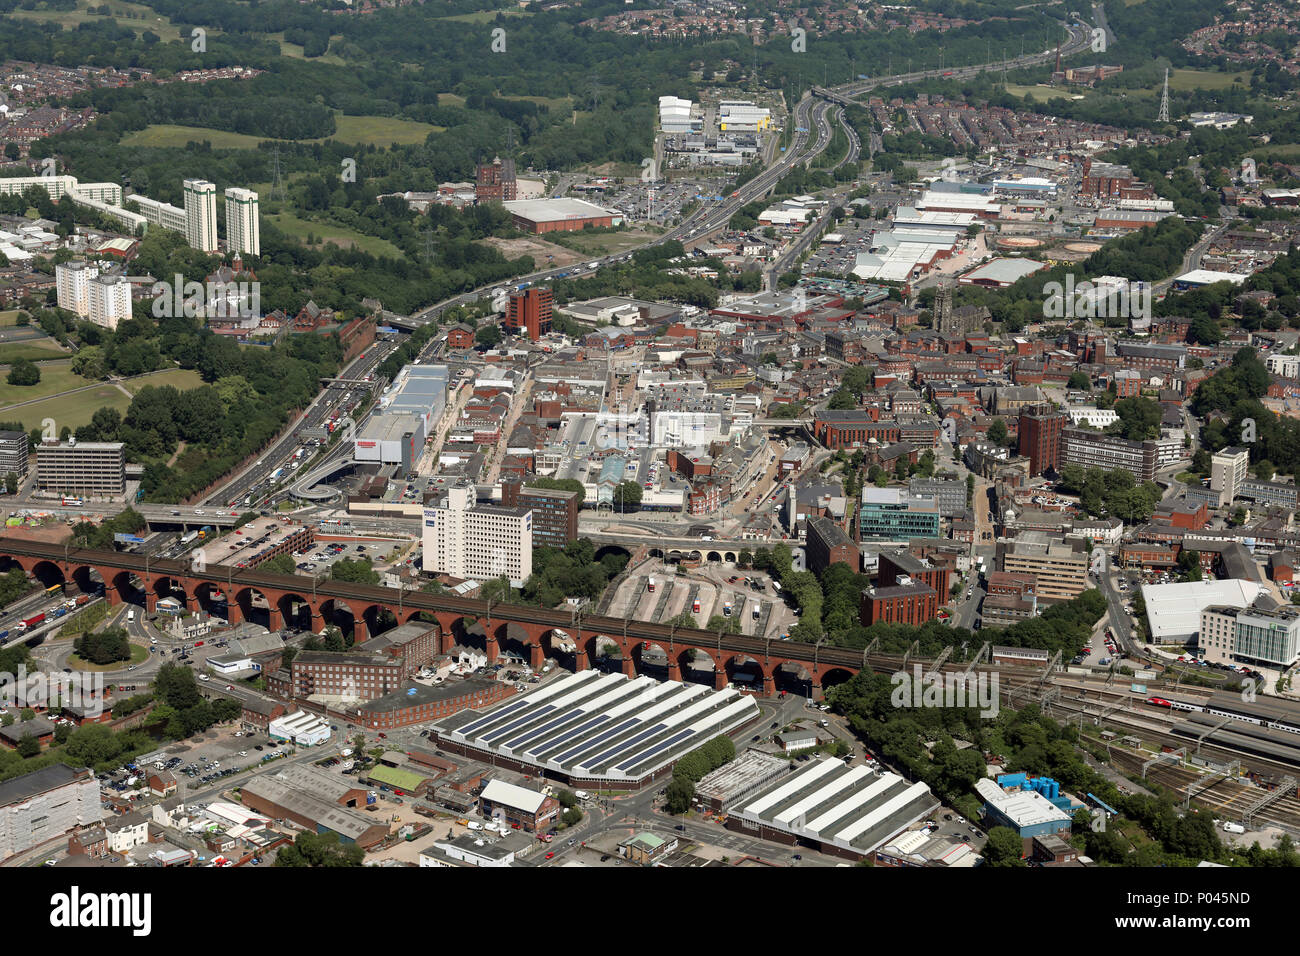 aerial view of Stockport town centre near Manchester, UK - Stock Image